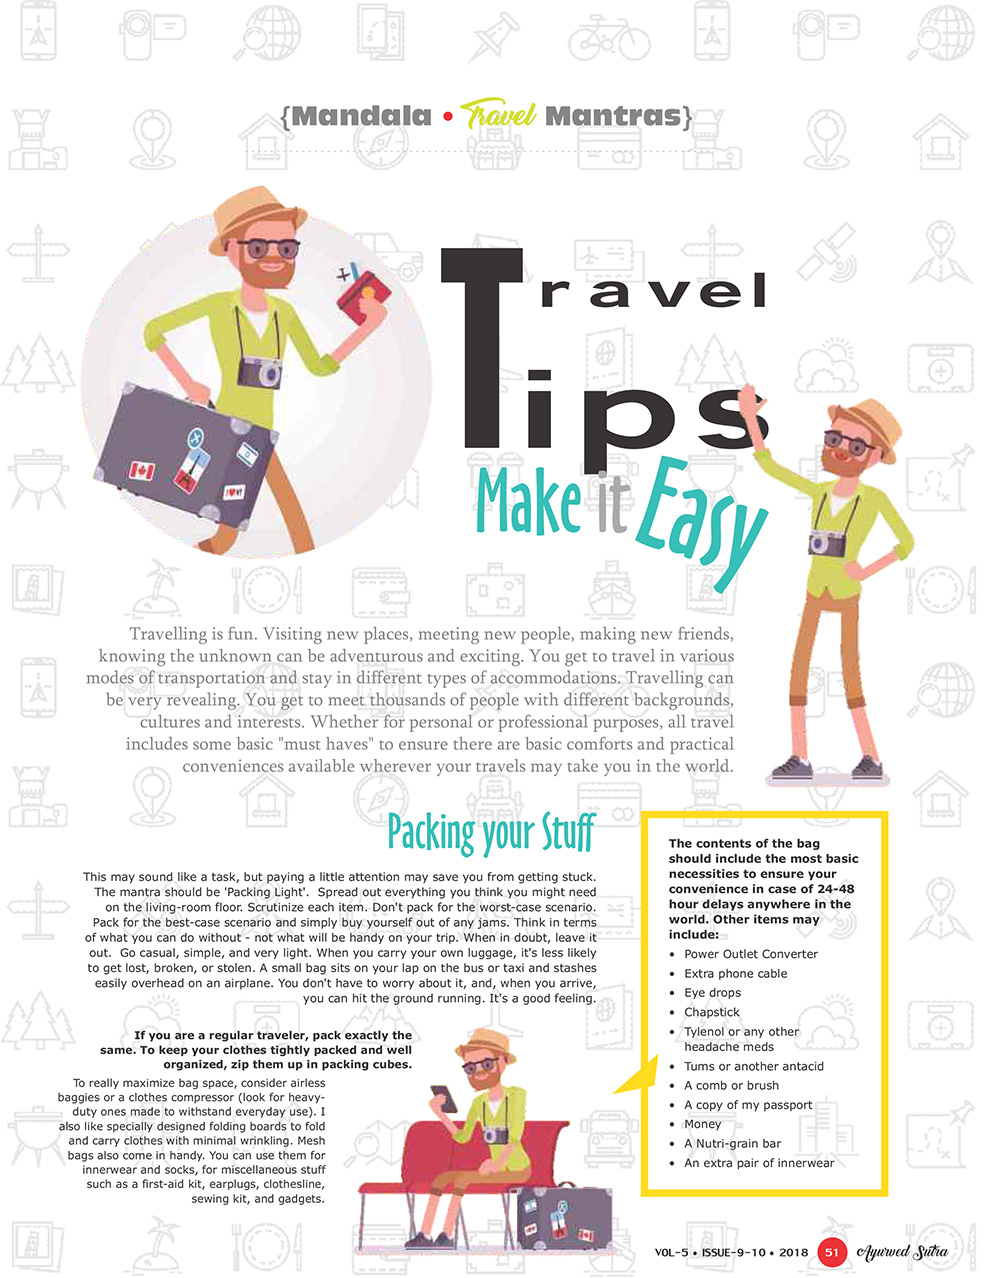 Ayurvedsutra Vol 05 issue 09 10 2 53 - Travel Tips: Make it Easy